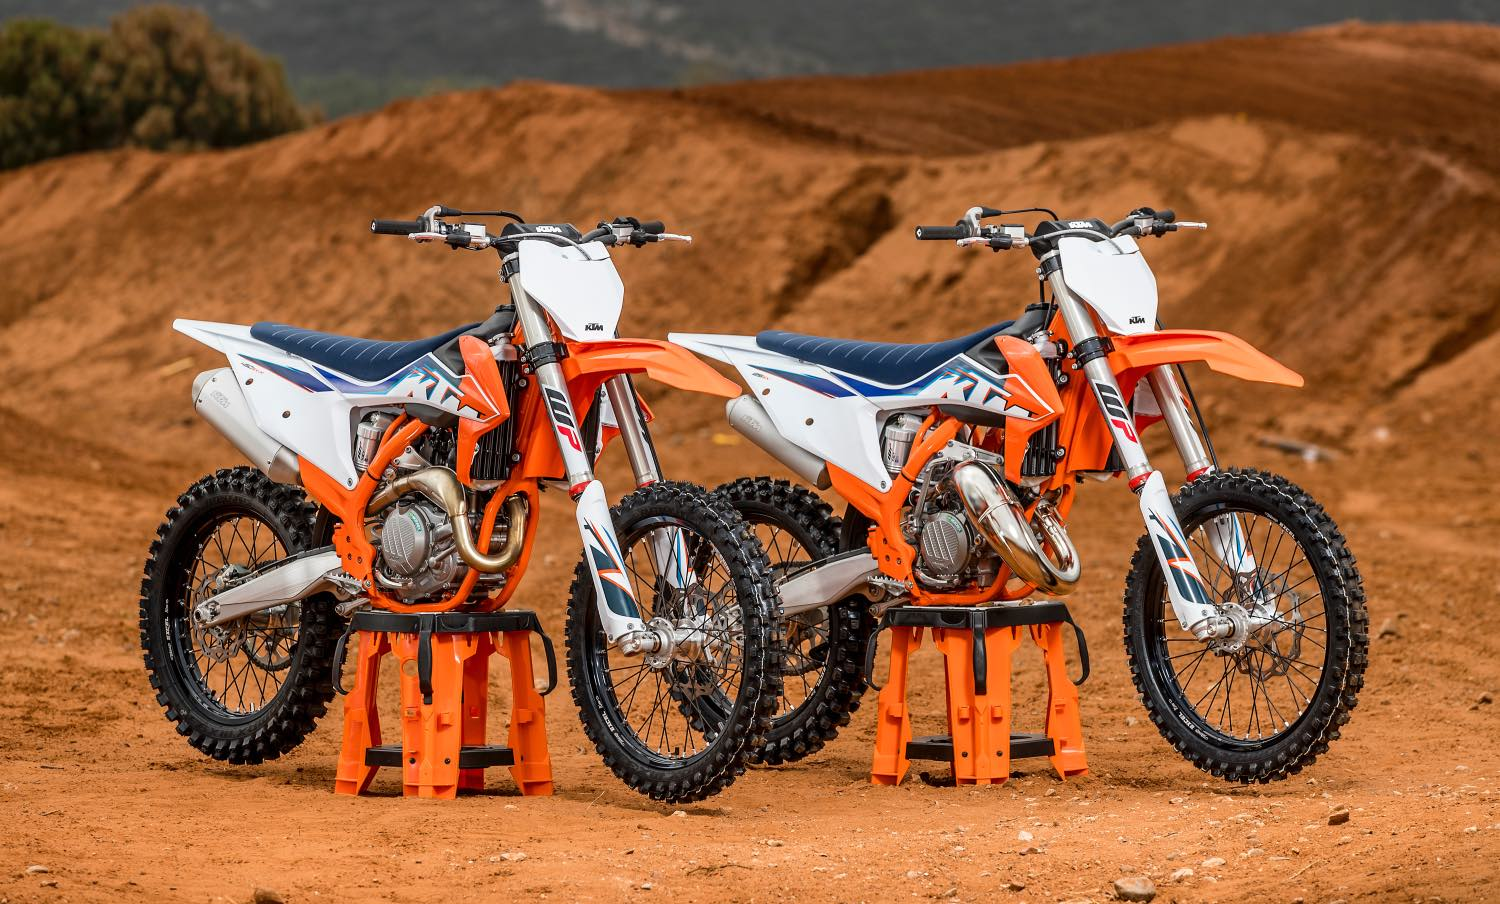 Introducing the 2022 KTM Motocross Range - the most complete and technologically advanced line-up of Motocross bikes